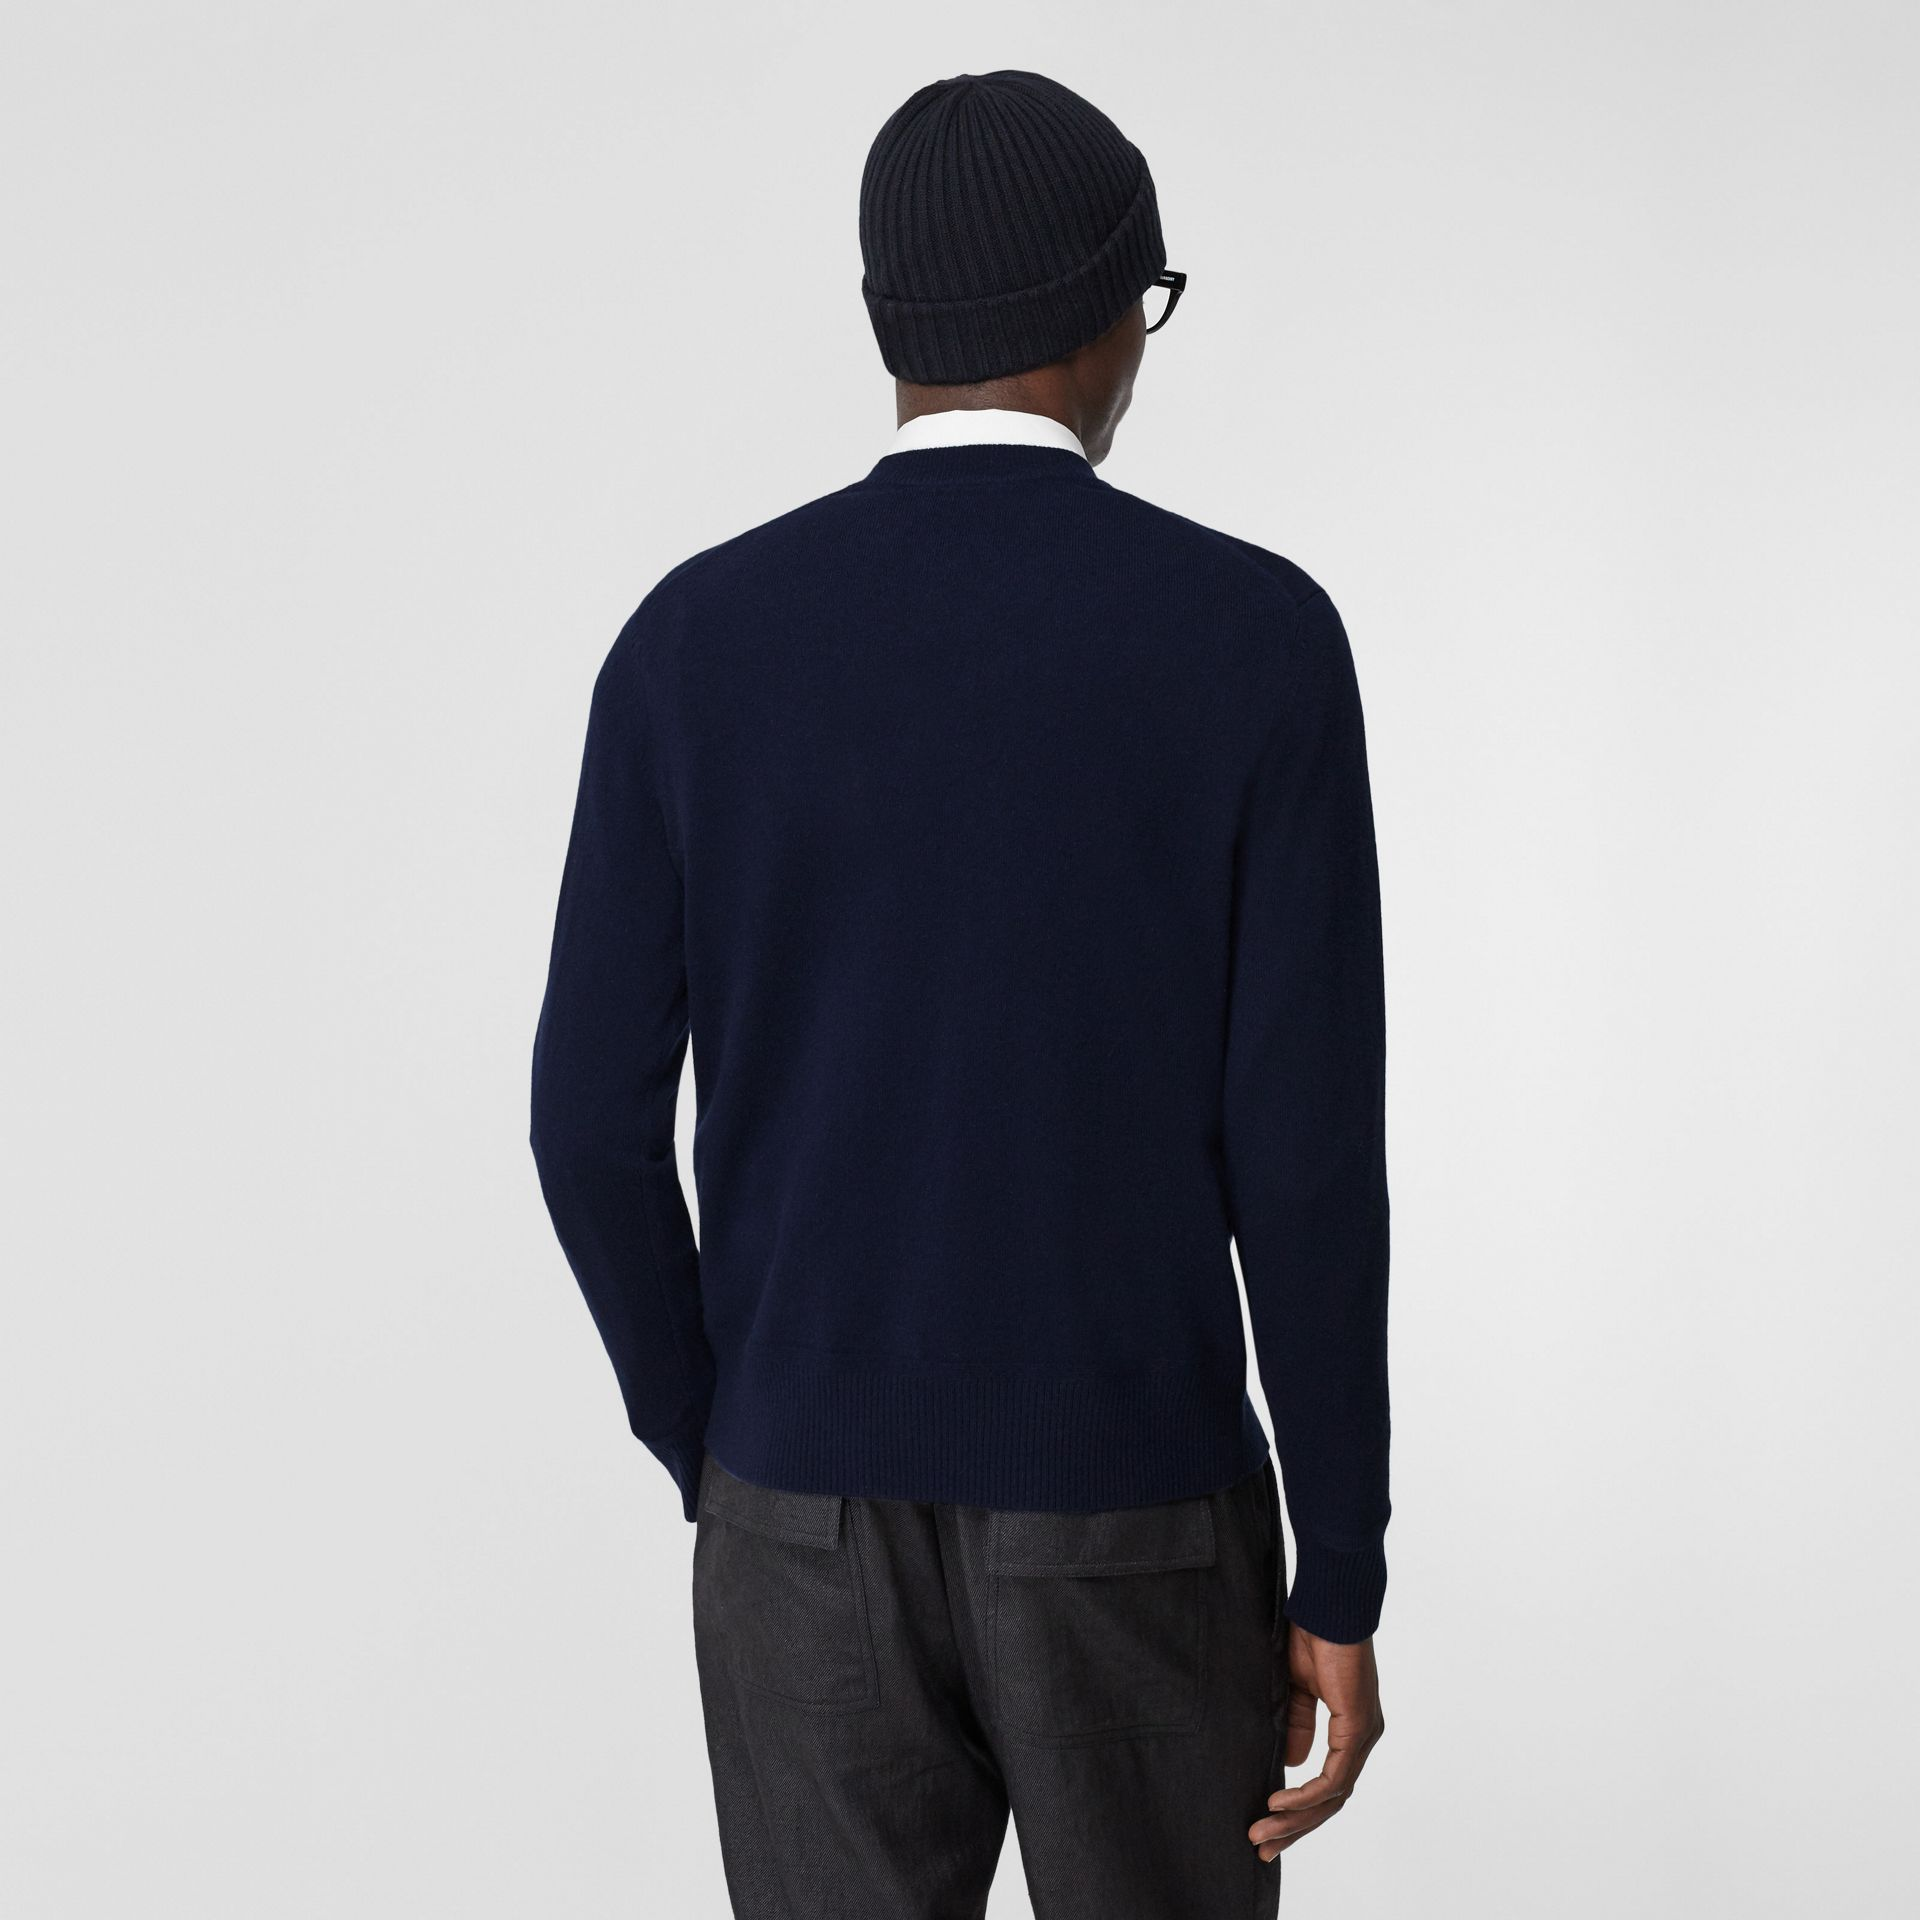 Monogram Motif Cashmere Sweater in Navy - Men | Burberry - gallery image 2